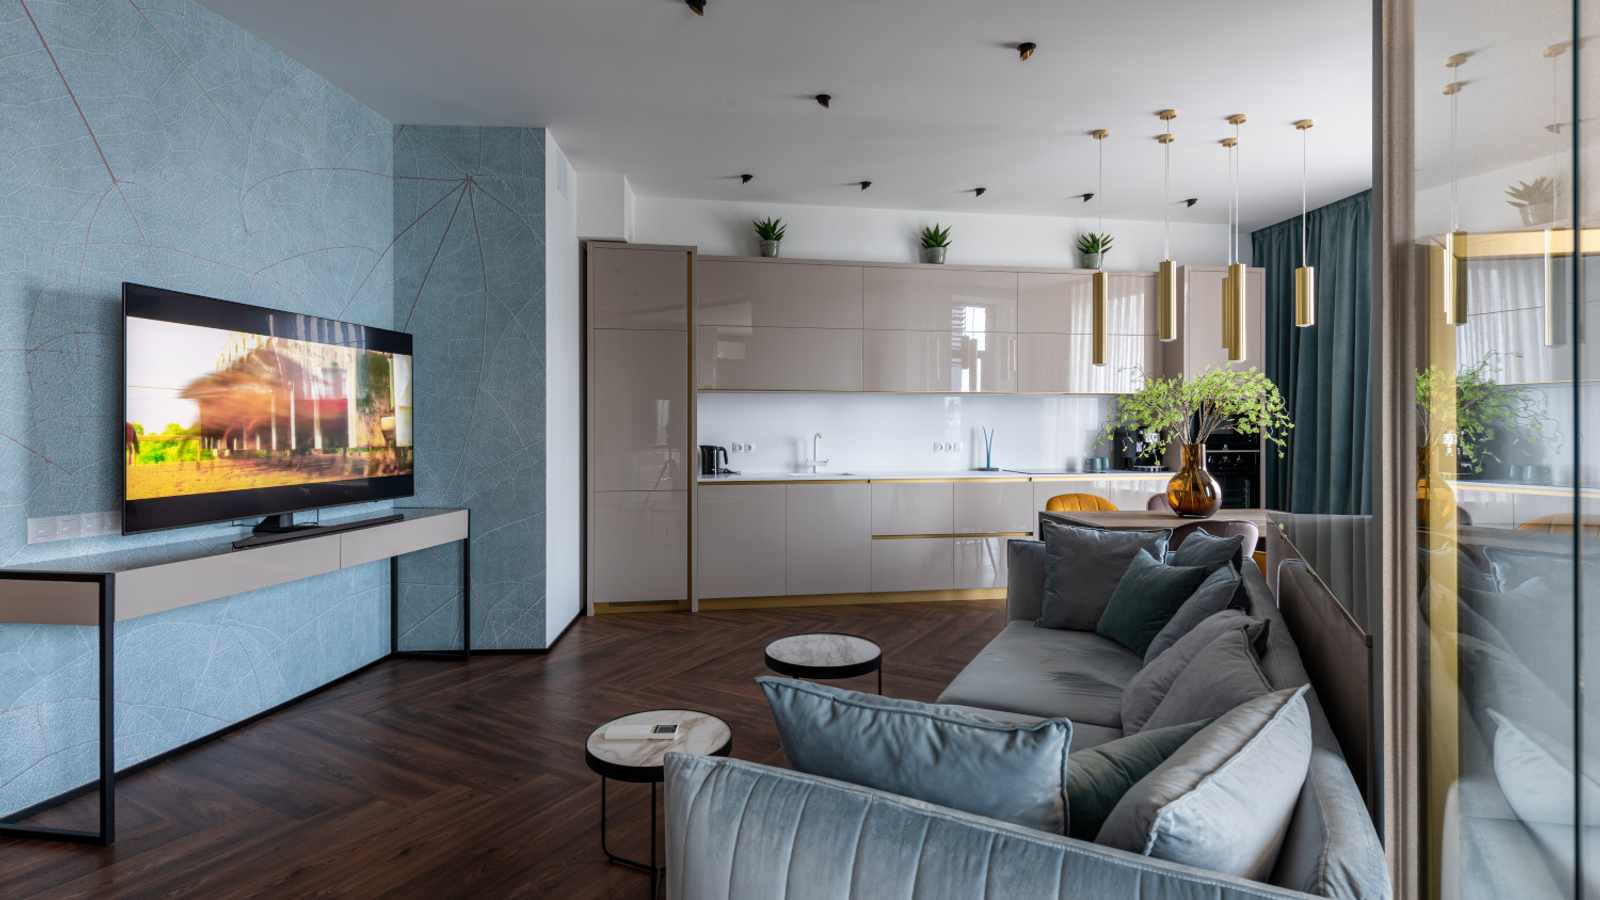 How to give your rented home a refresh without angering your landlord